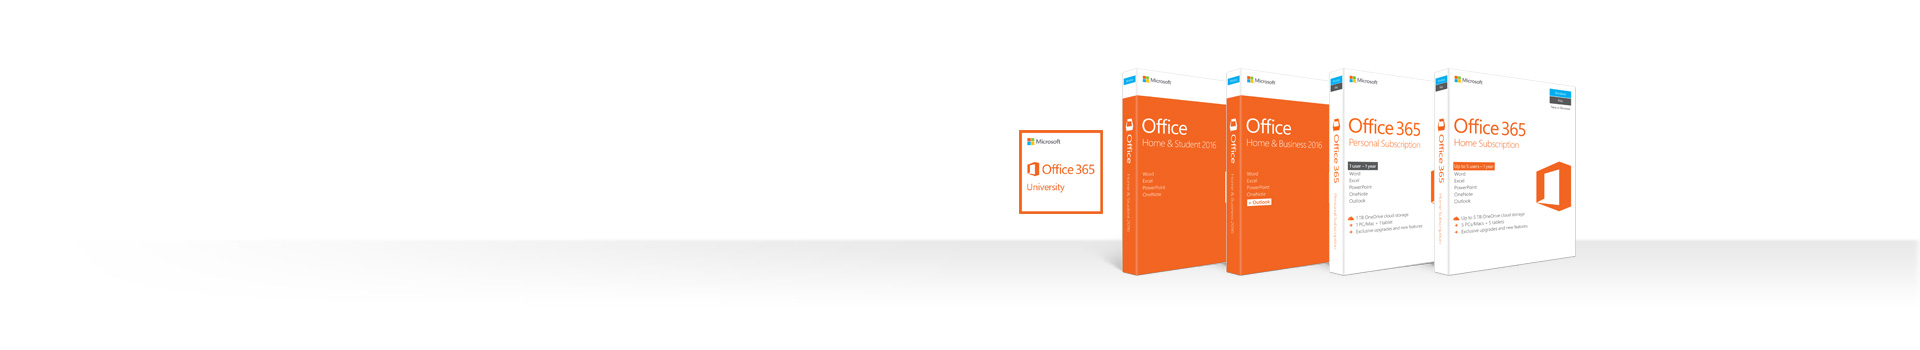 A row of boxes of Office 2016 and Office 365 products for Mac